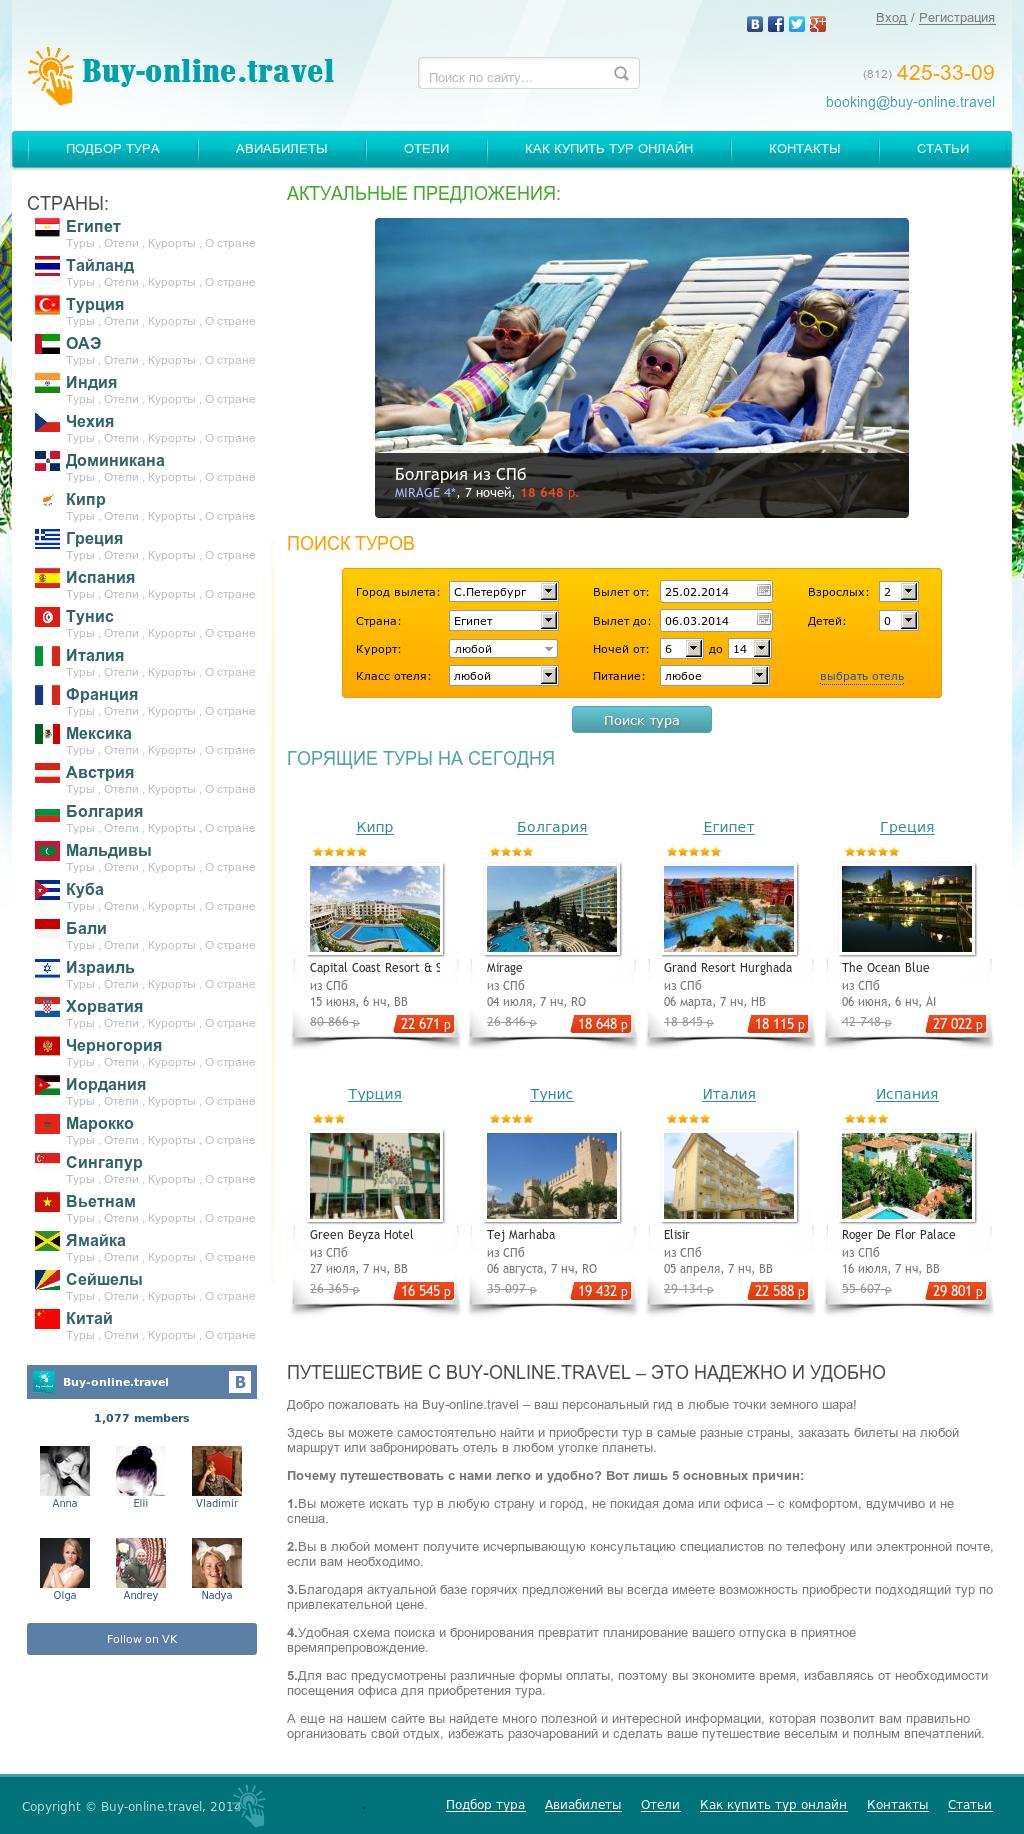 buy-online.travel